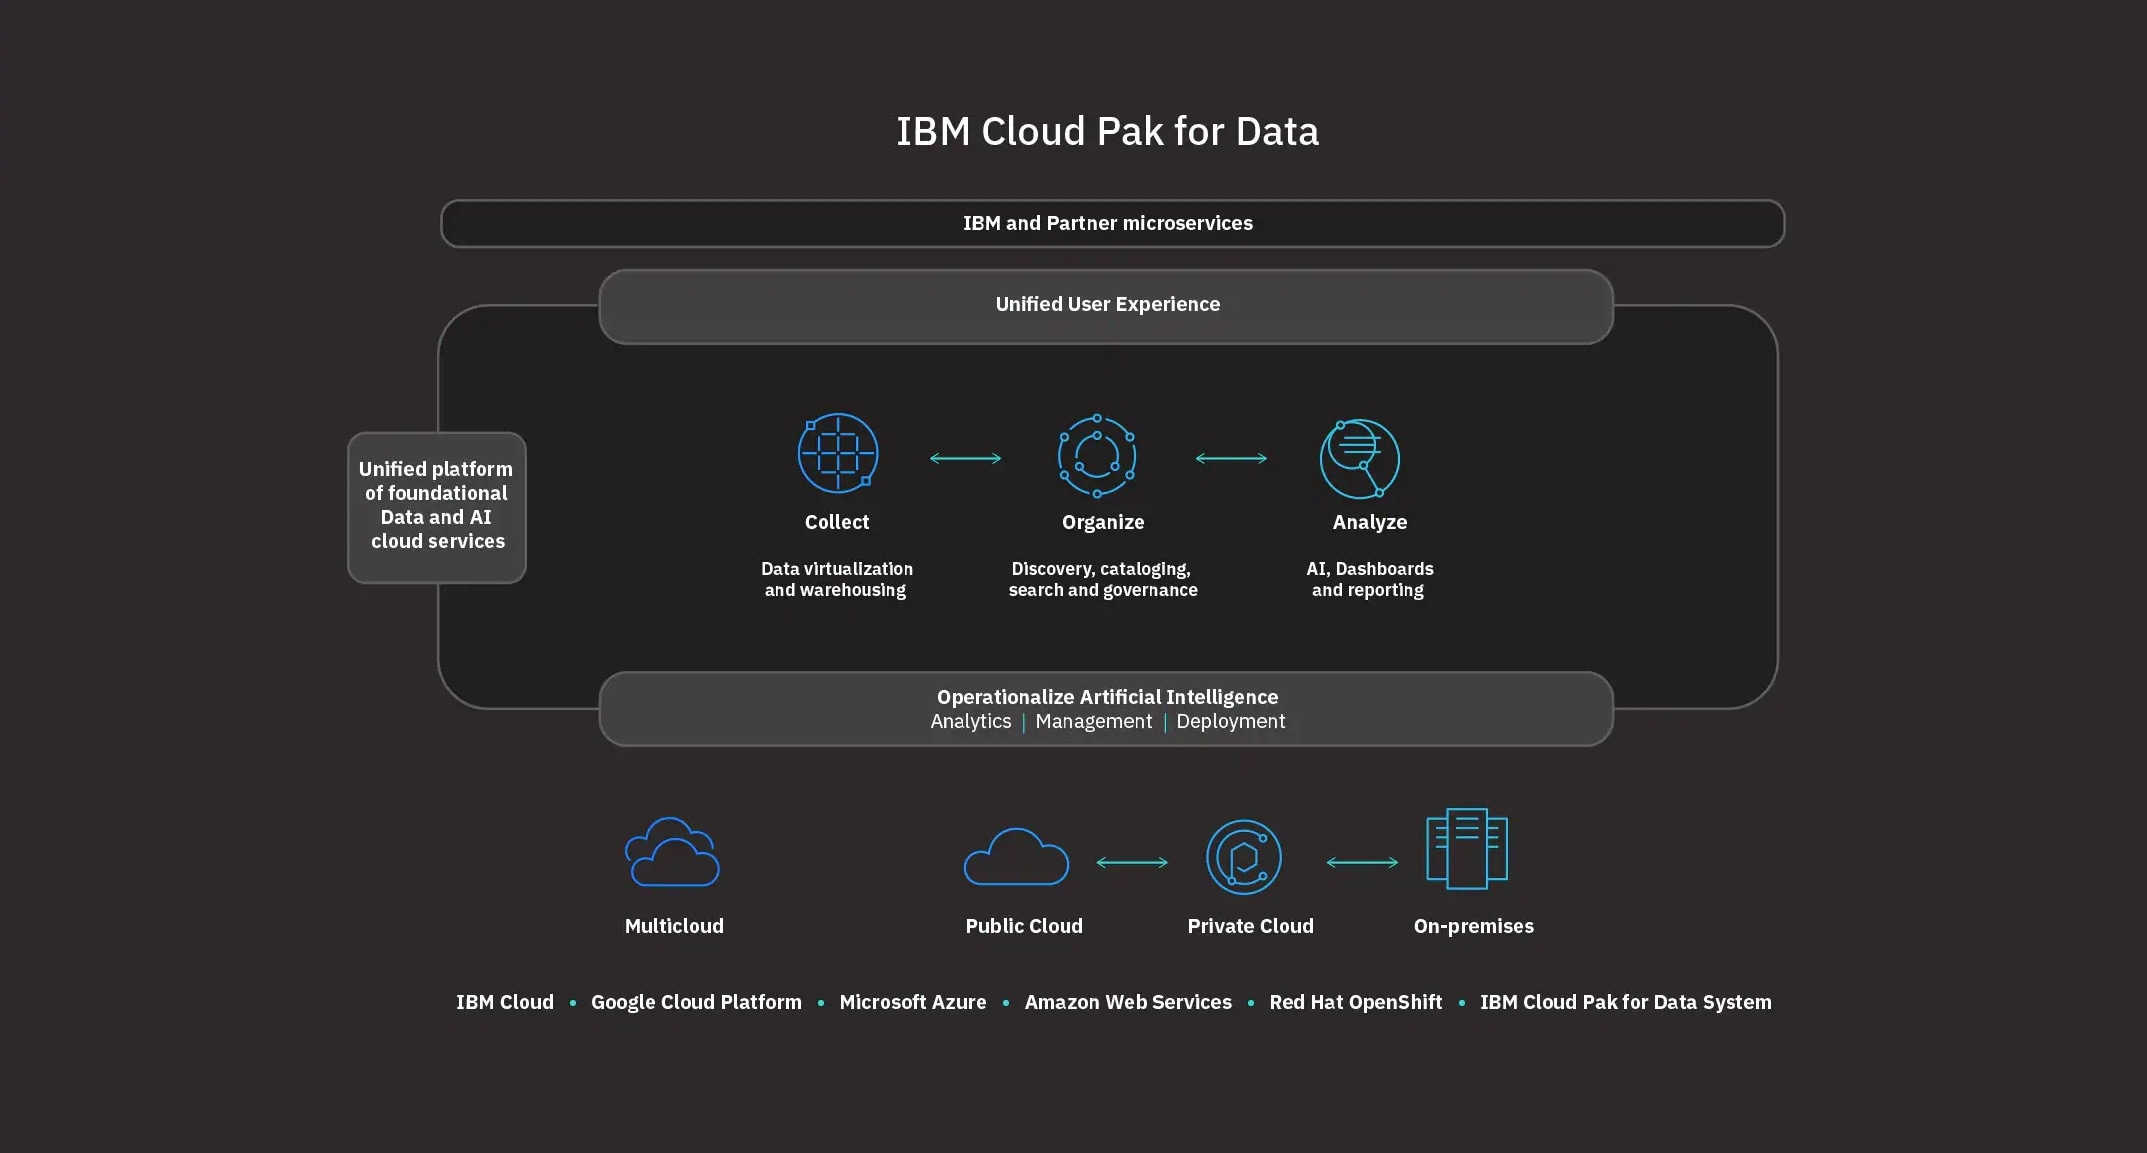 IBM Cloud Pak for Data 3.0 product walkthrough